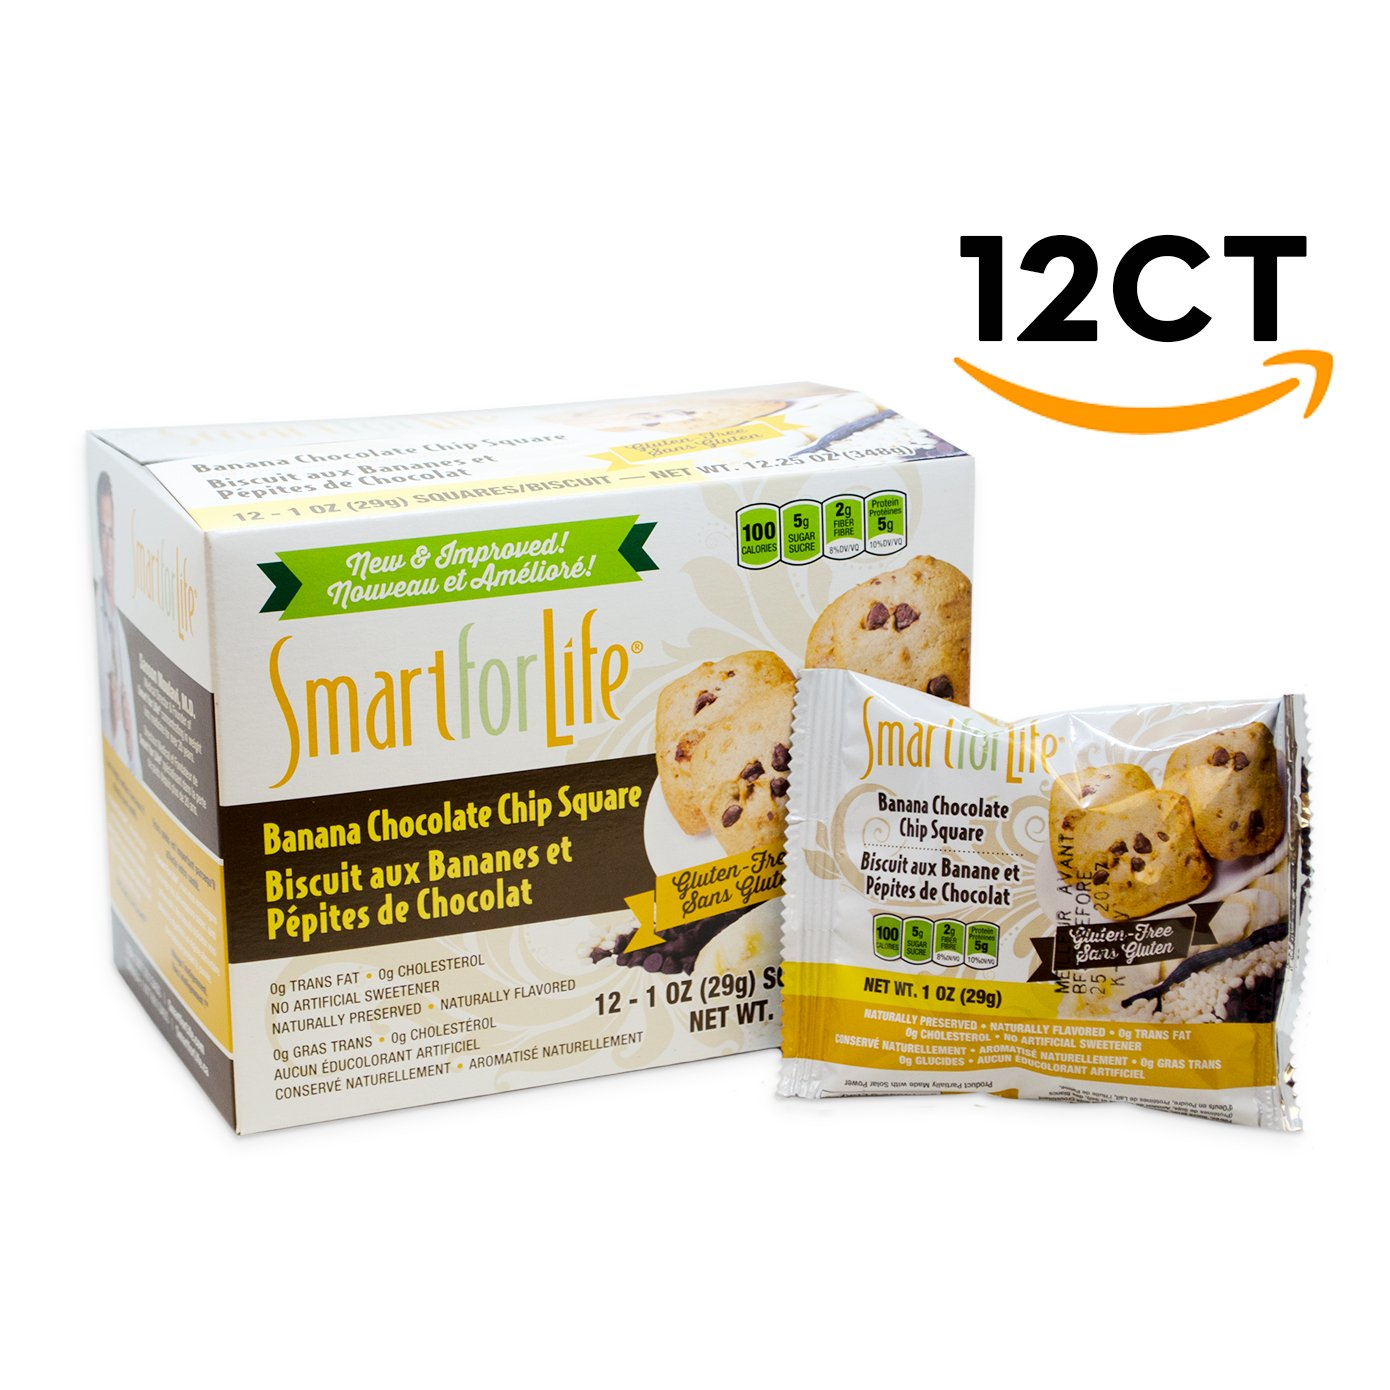 Smart For Life Banana Chocolate Chip Granola Squares, 12-Count by Smart for Life (Image #1)